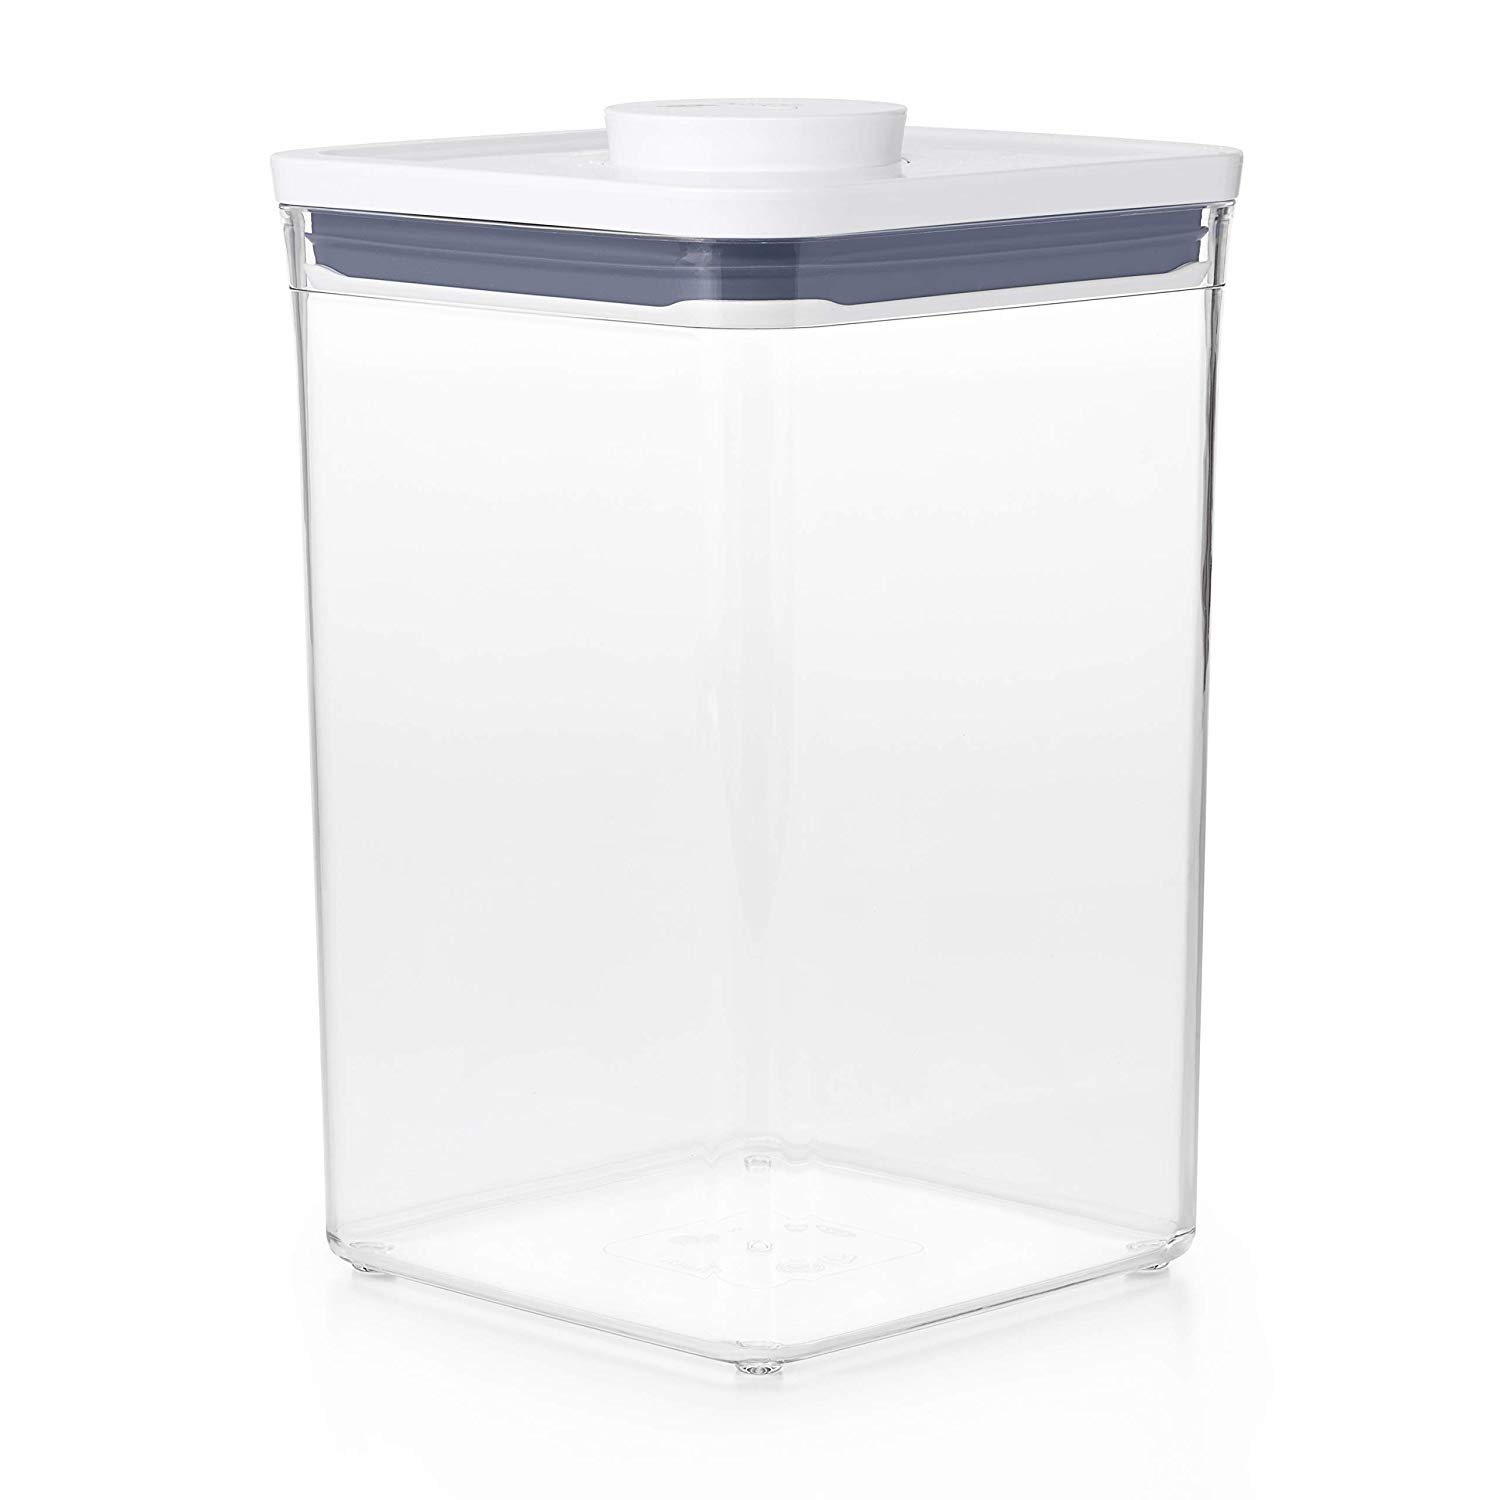 OXO Good Grips POP Container 4.4-Quart Square Airtight Food Storage for for Flour and More (Set of 4)